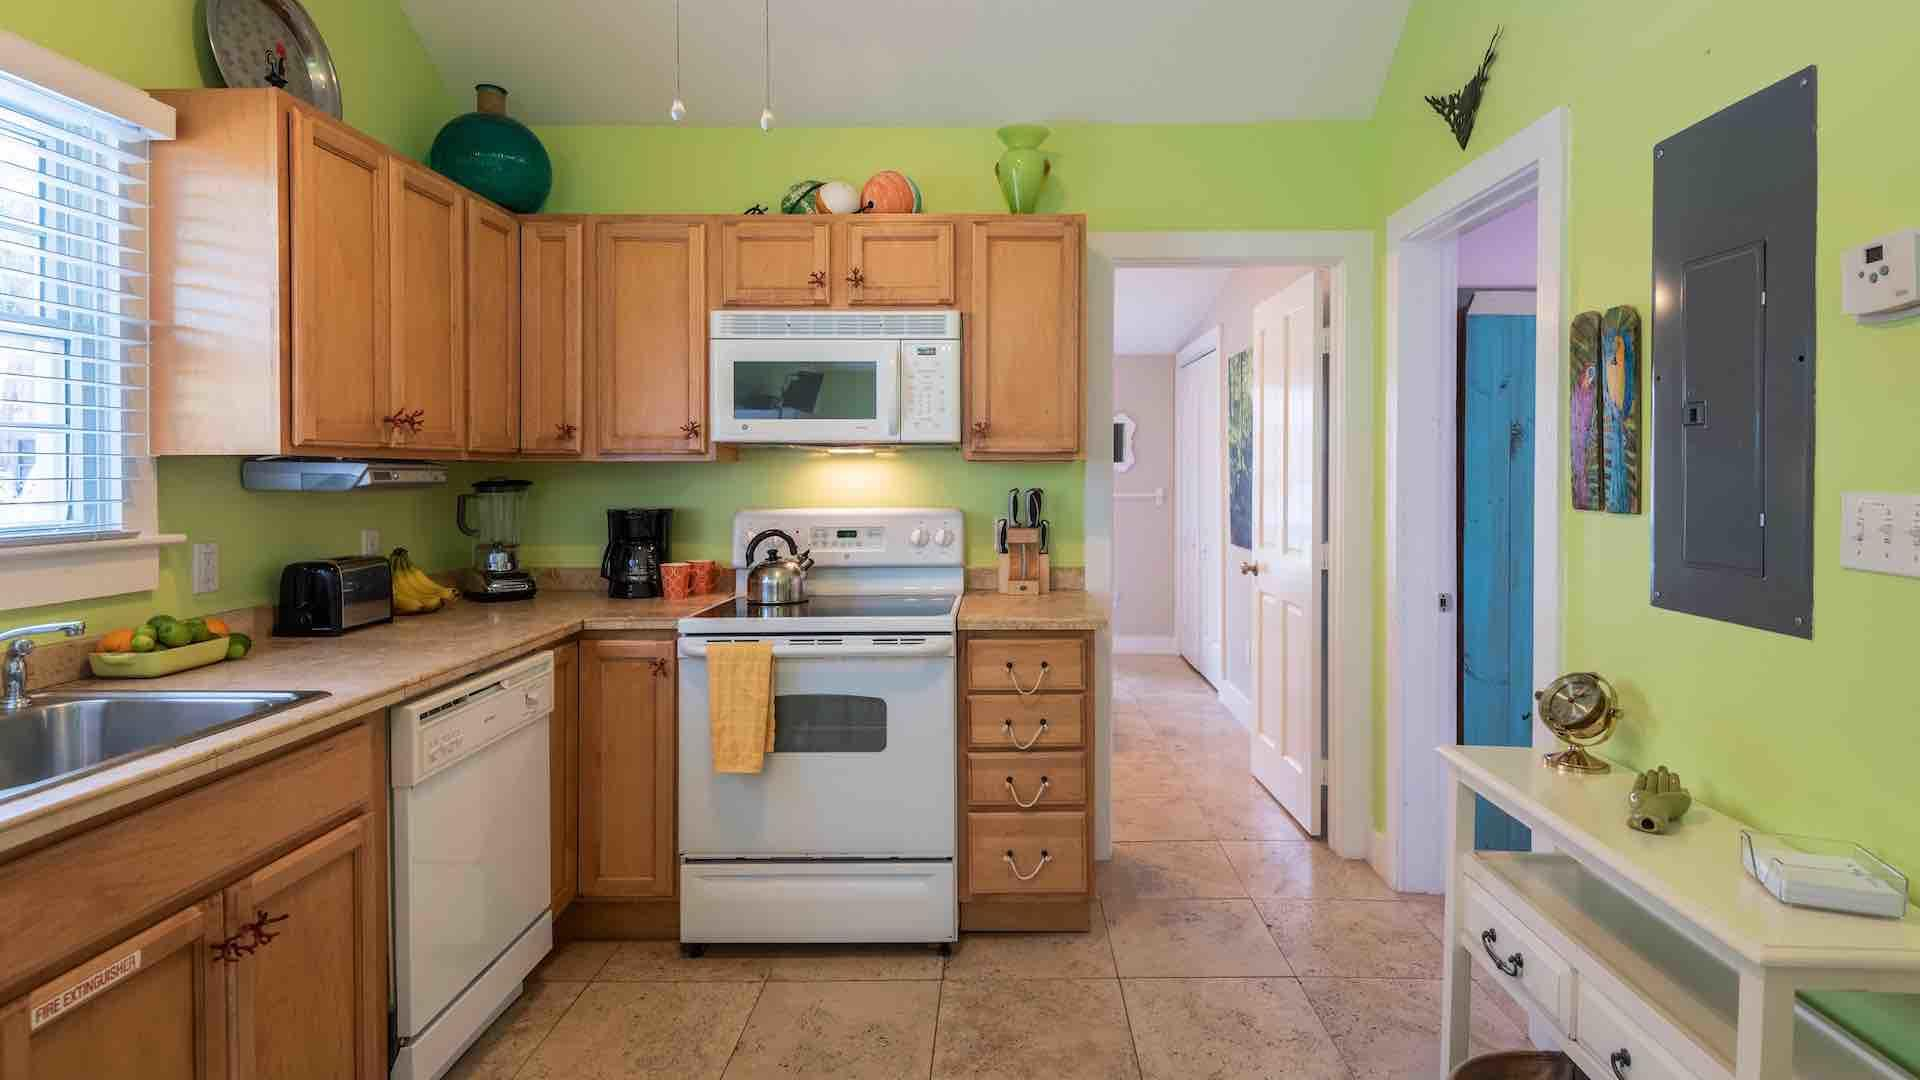 The kitchen is also equipped with an electric stove, oven, and a dishwasher for easy clean up after meals...